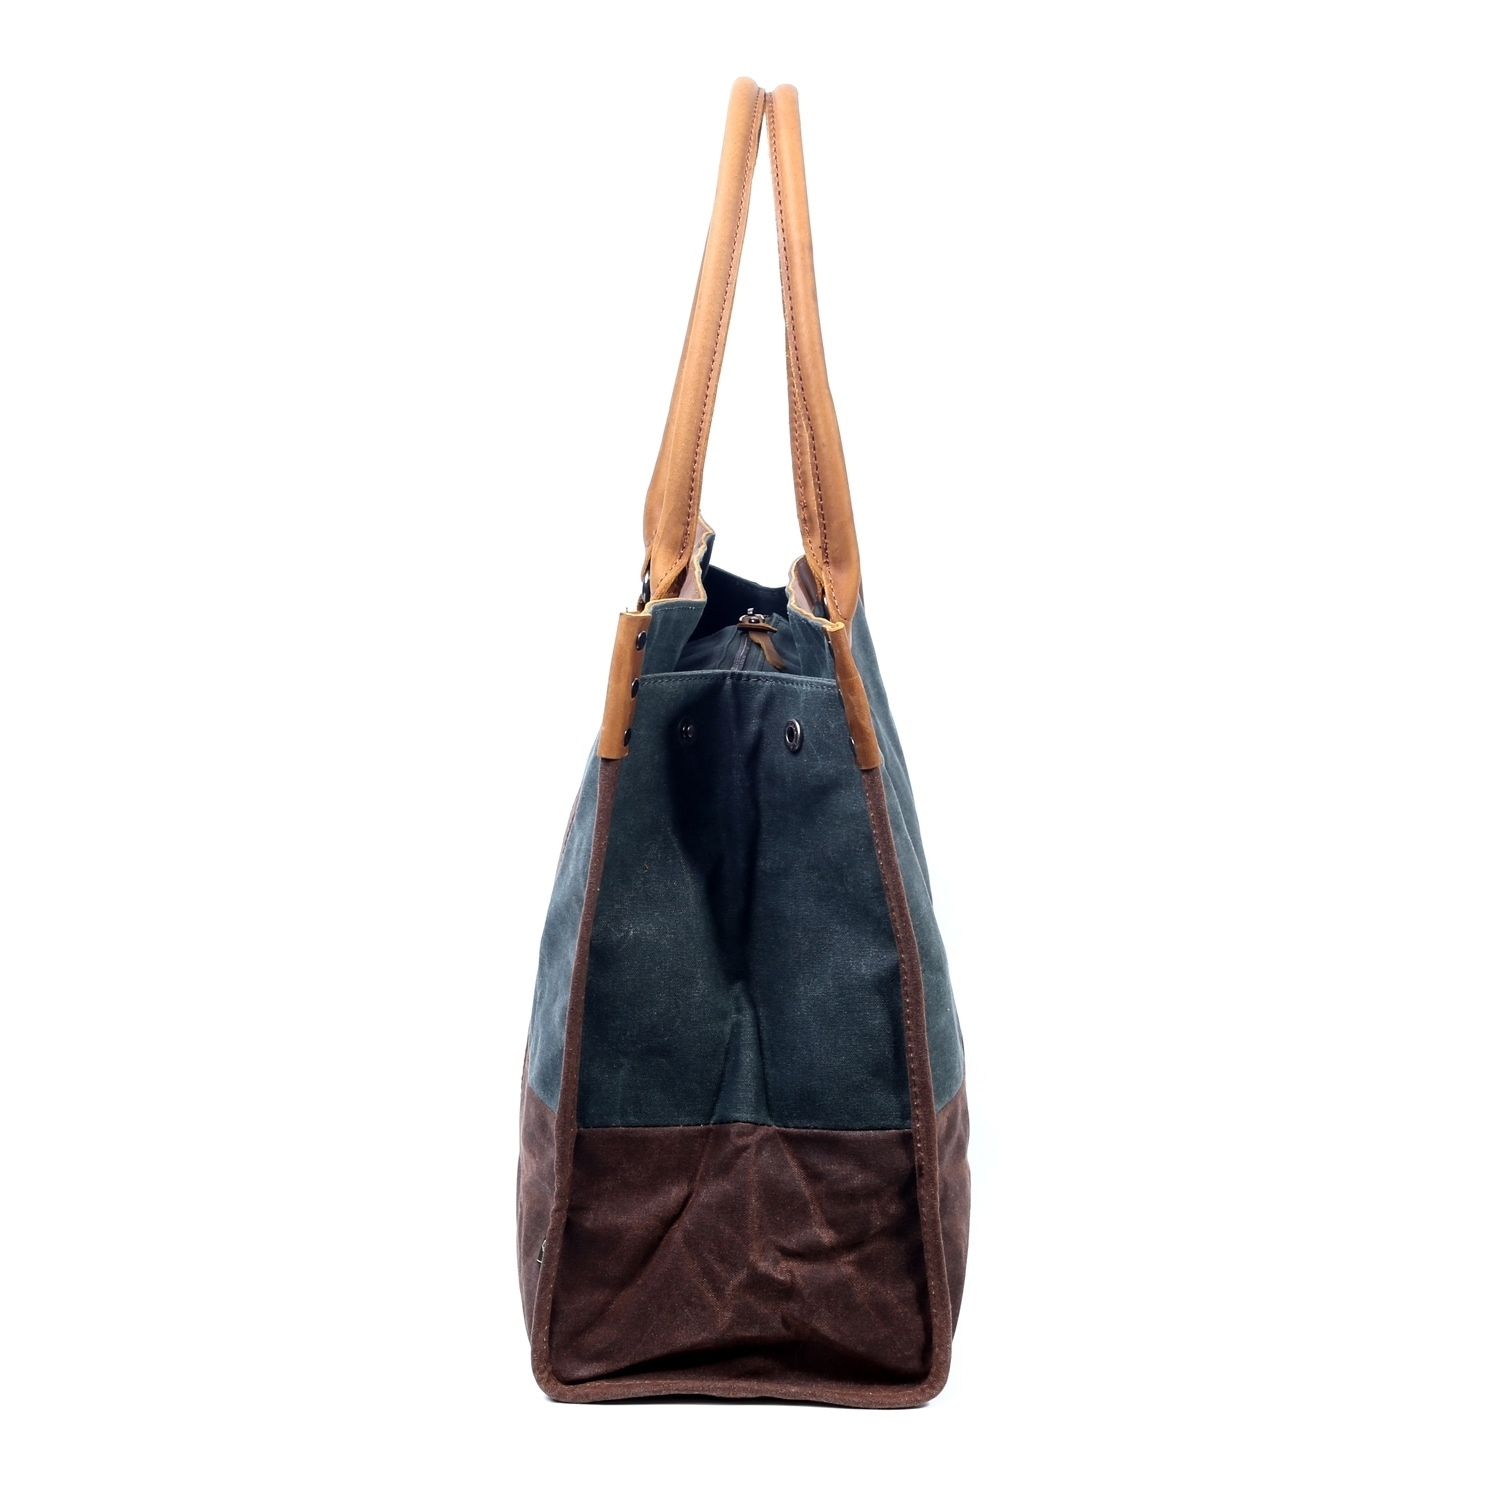 2751d2d123 Shop TSD Brand Stone Creek Tote Bag - On Sale - Free Shipping Today -  Overstock - 22966110